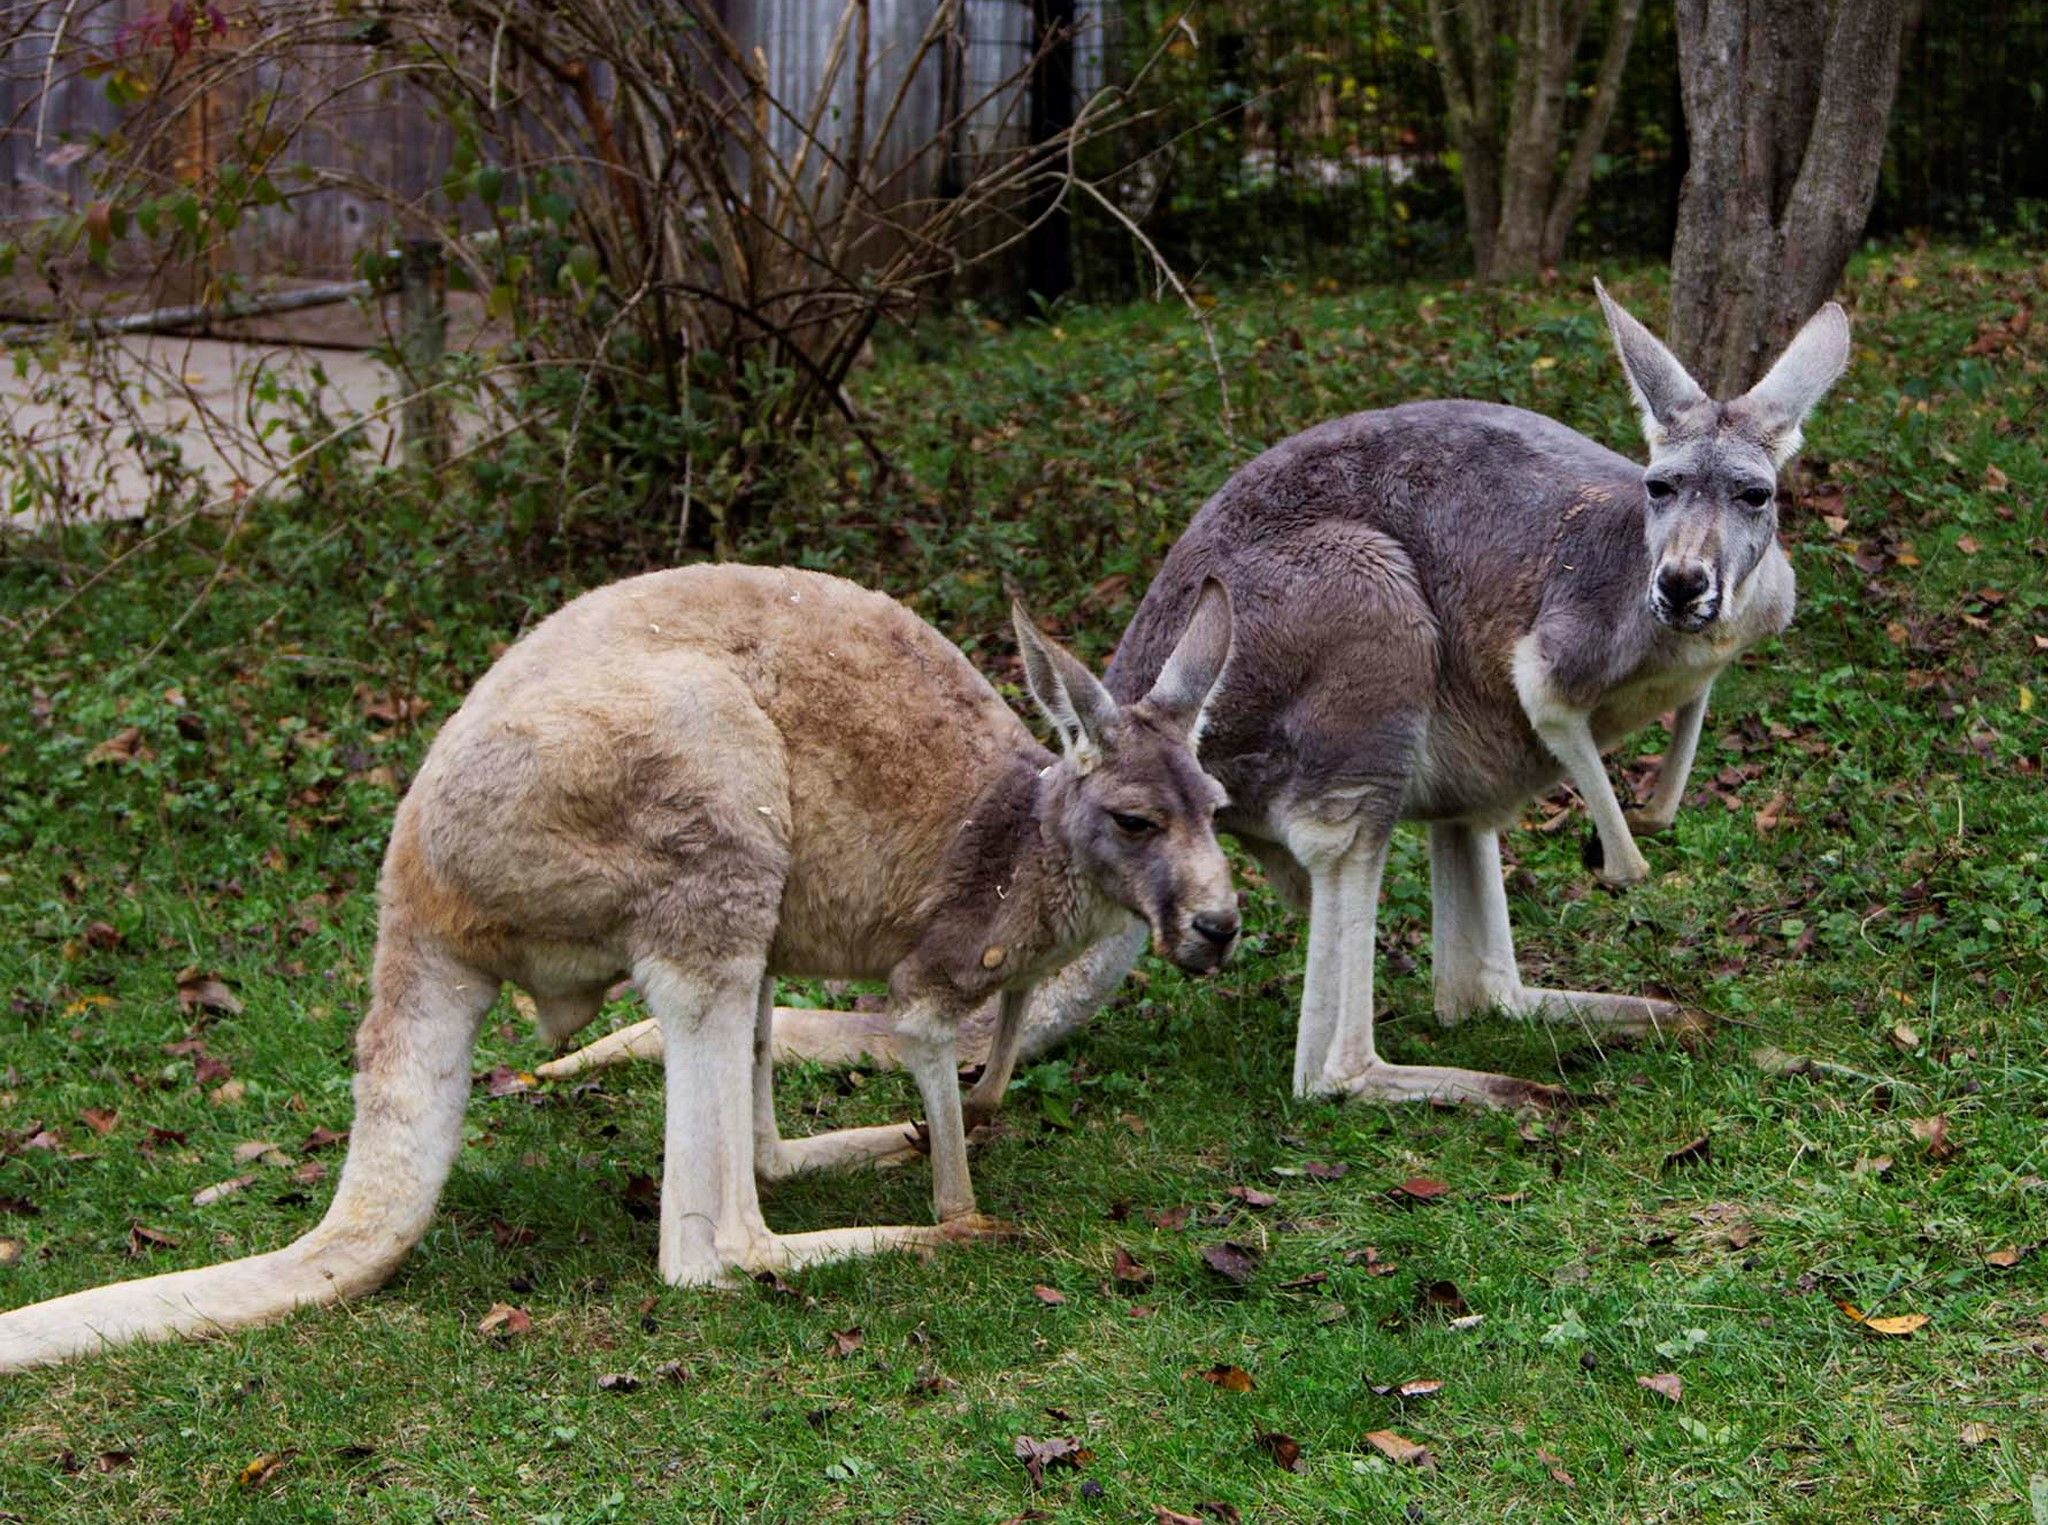 Two kangaroos enjoying the outdoors at the zoo's Australian exhibit. This image is from Secrets... [Photo of the day - October 2020]